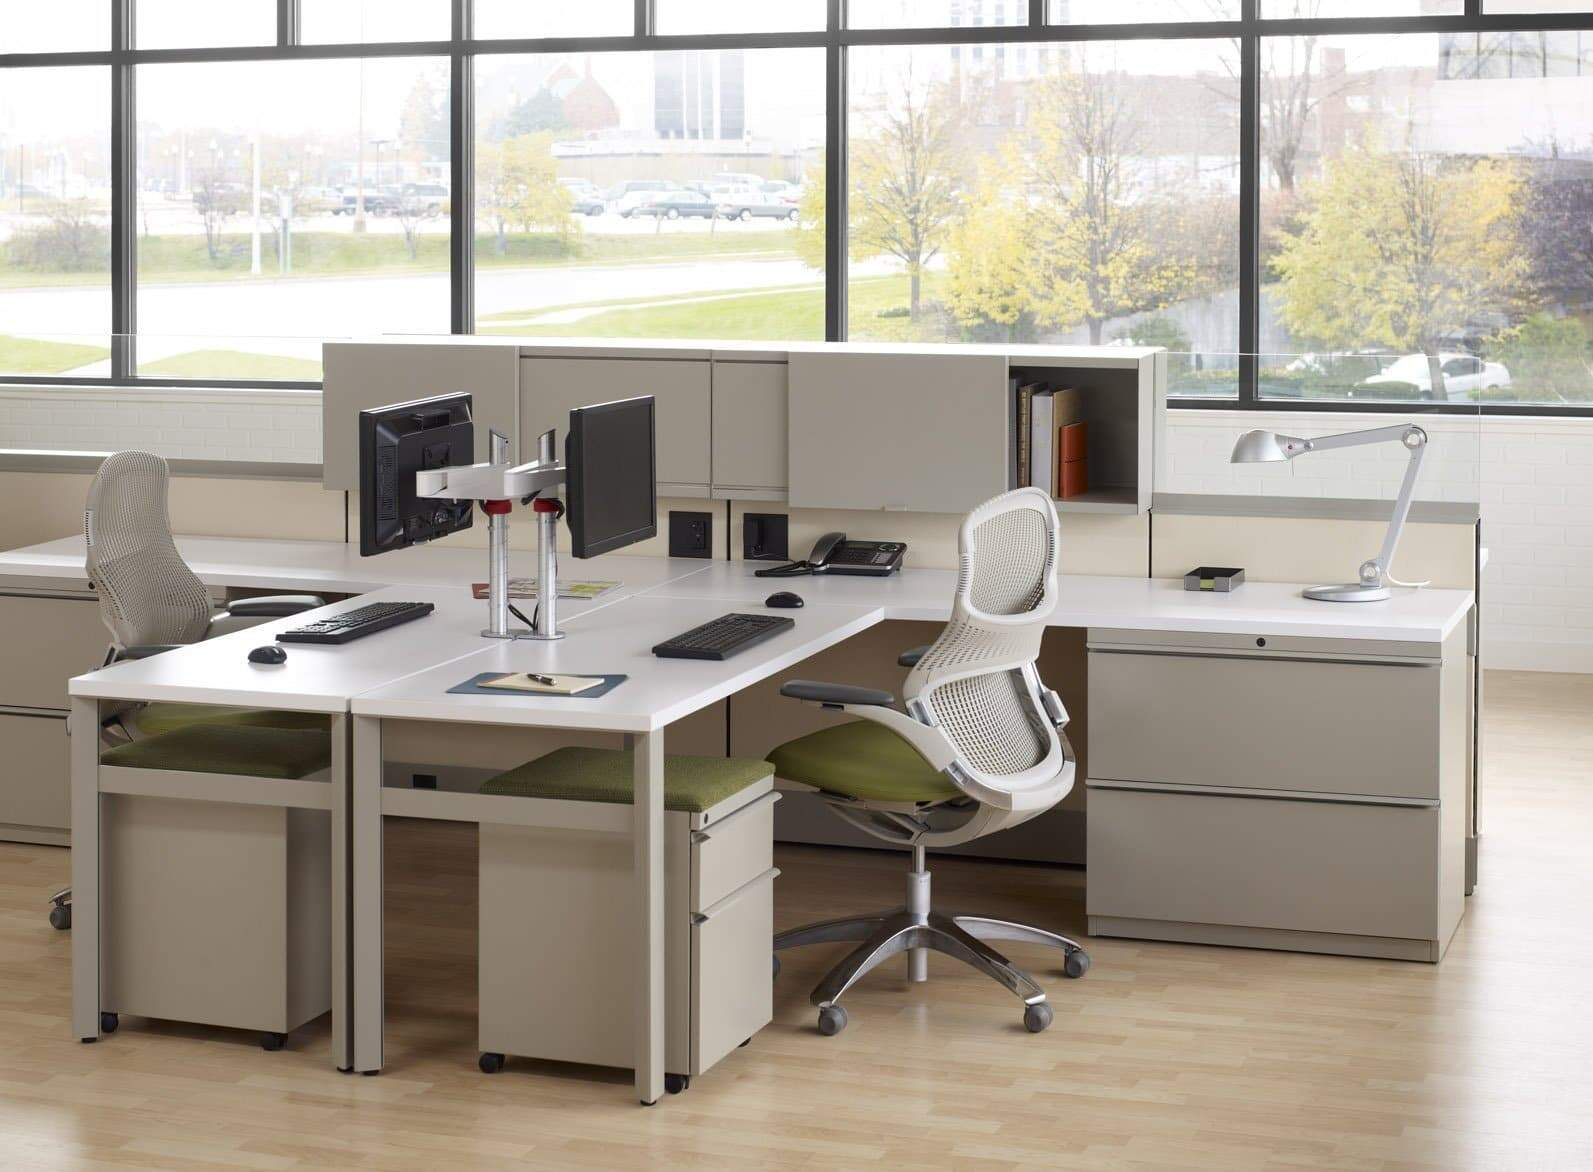 Dividends office furniture systems knoll dividends